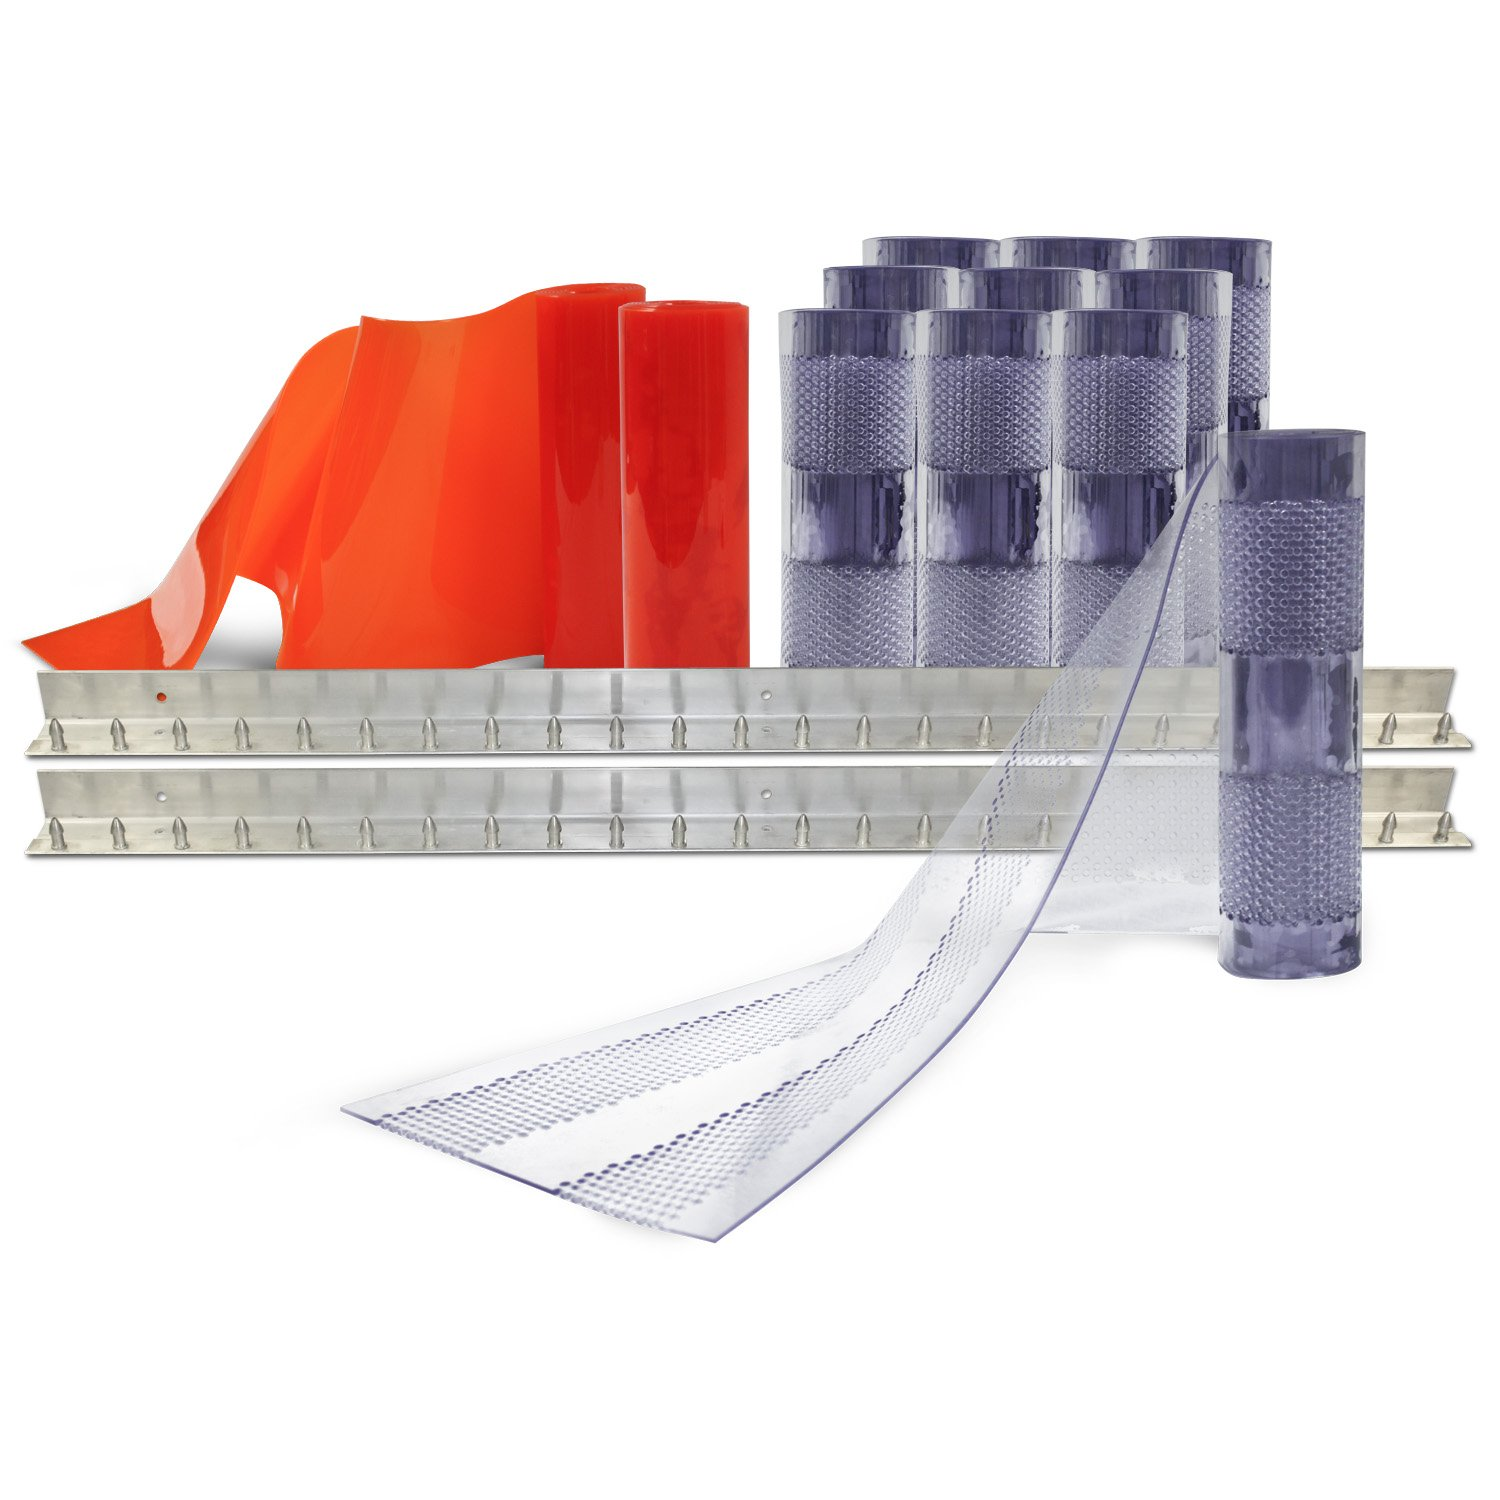 Aleco 443575 Clear-Flex II Standard AirStream Perforated PVC Strip Door Kit with MaxBullet Aluminum Mounting Hardware, 12'' Width x 96'' Height x 0.12'' Thick